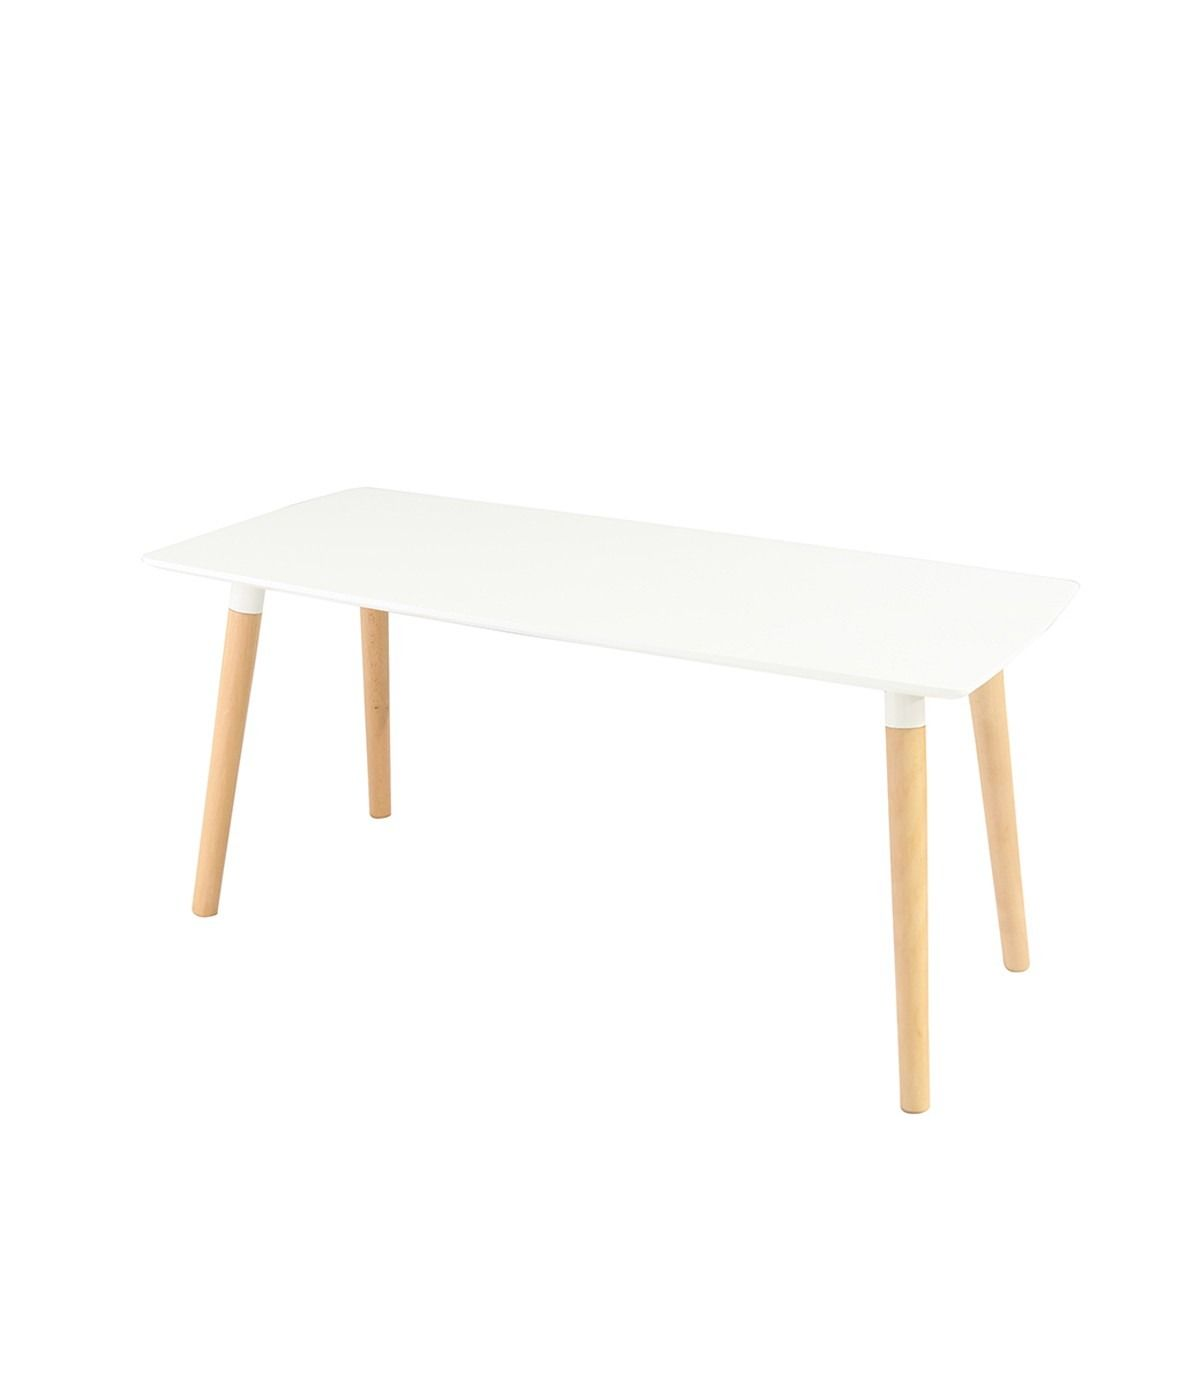 Naples rectangle white beech wooden coffee table naples naples rectangle white beech wooden coffee table naples rectangle white beech wooden coffee table the geotapseo Images